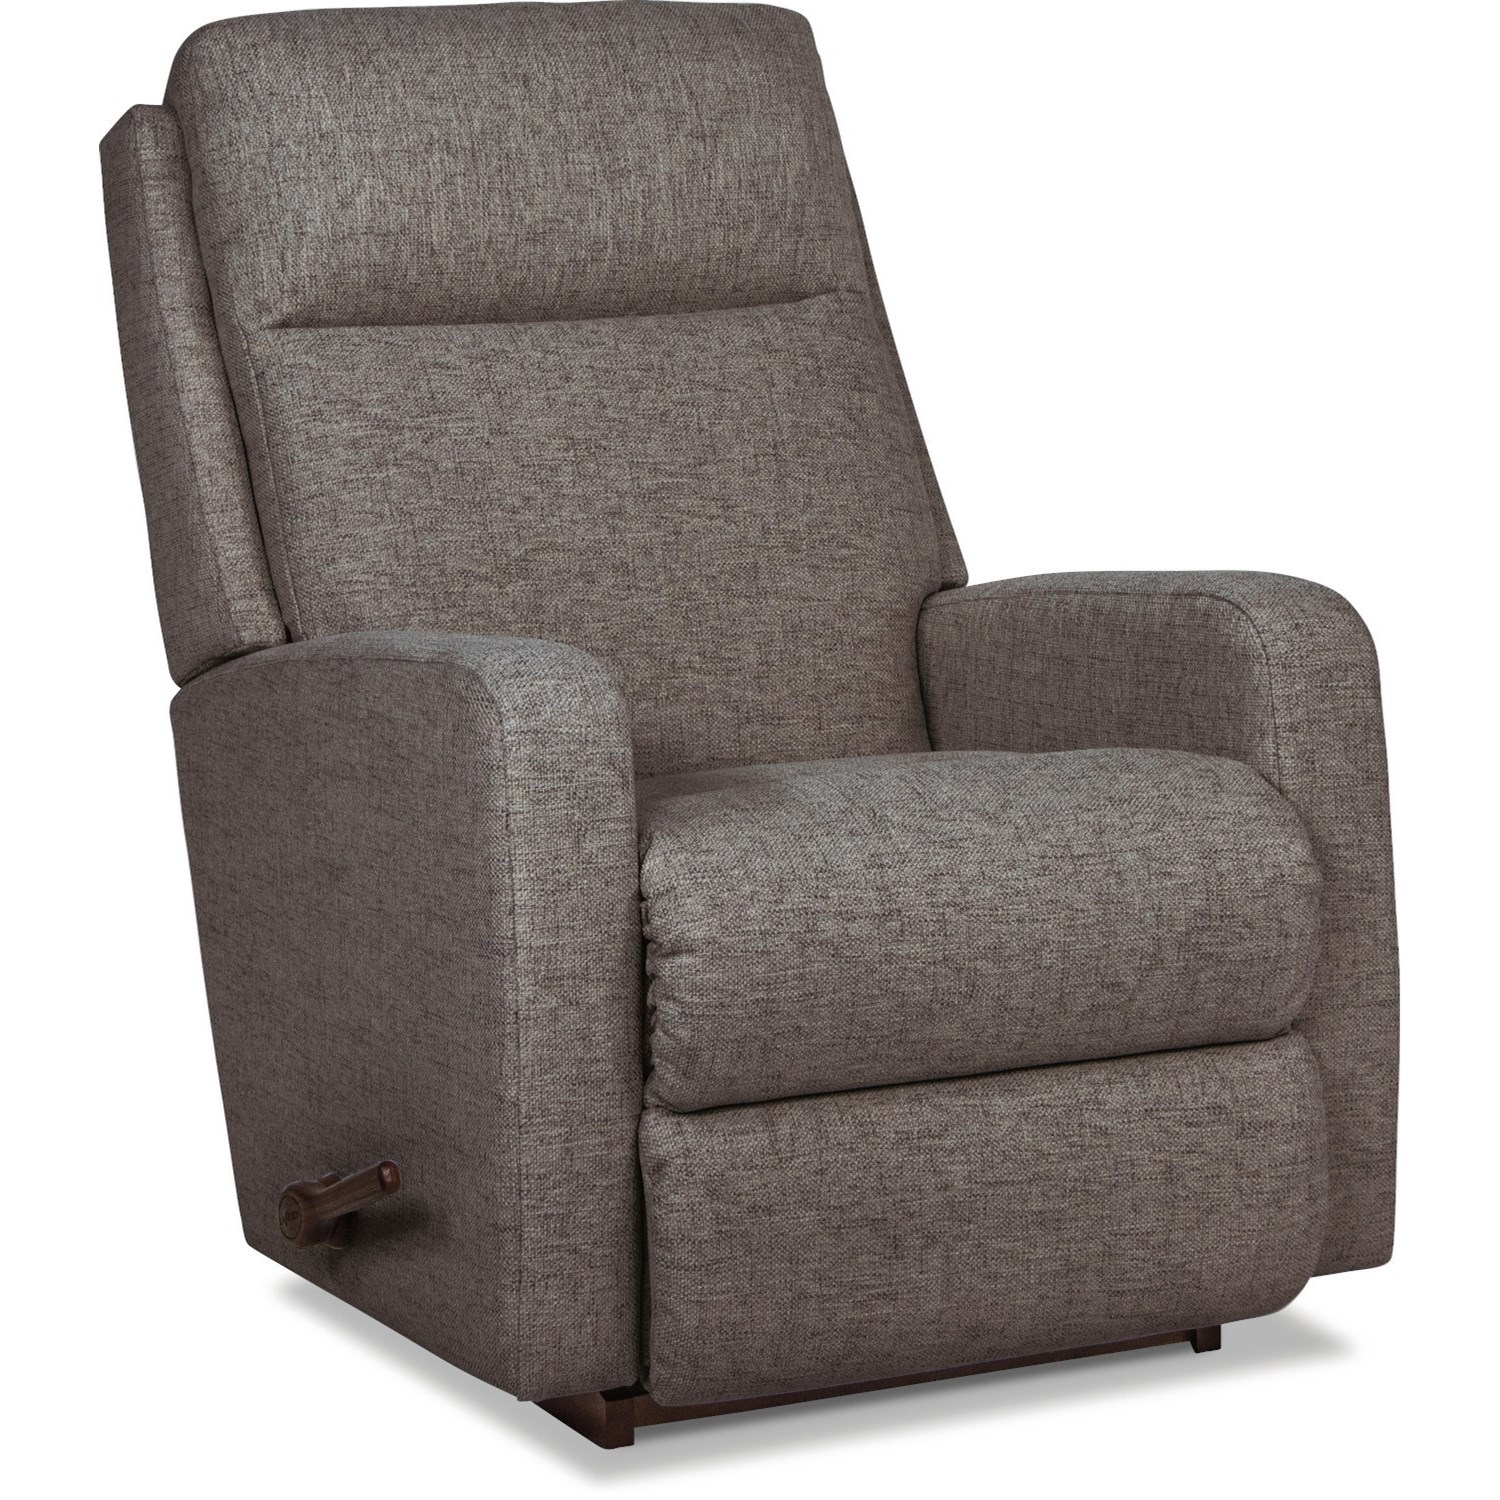 Finley Swivel Glider Recliner by La-Z-Boy at Novello Home Furnishings